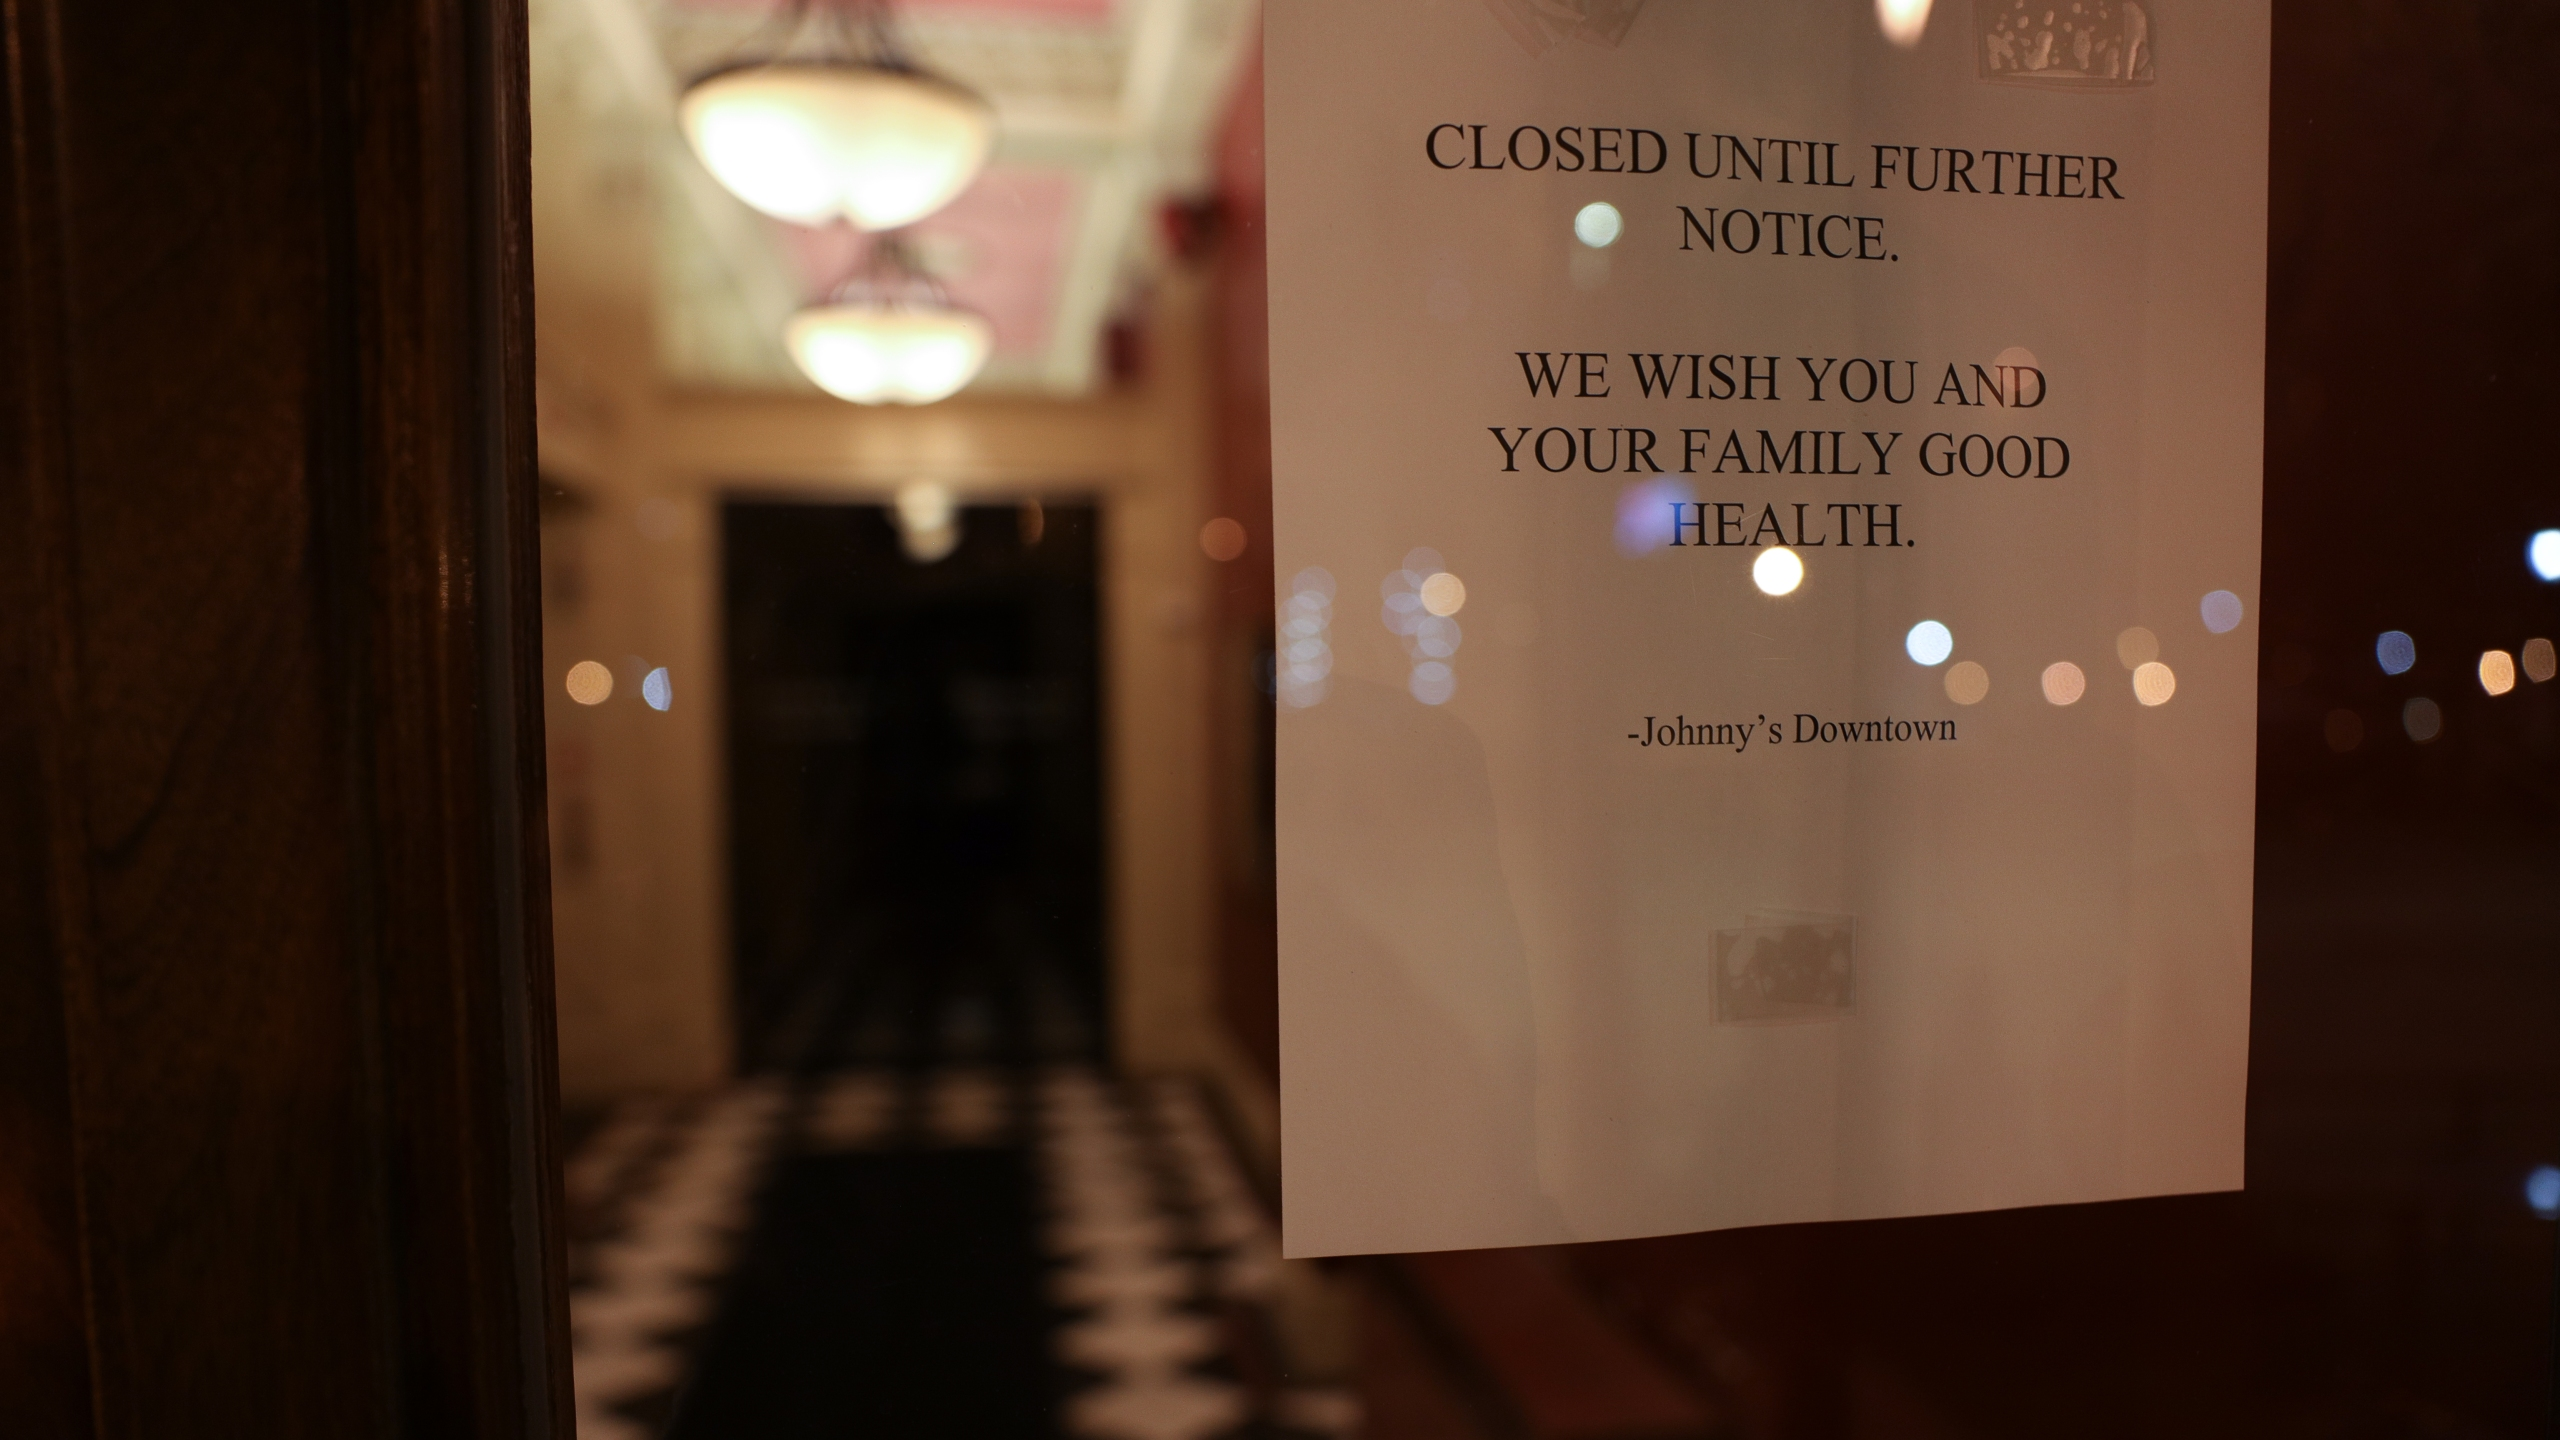 New York joins states ordering closure of restaurant dining rooms, bars